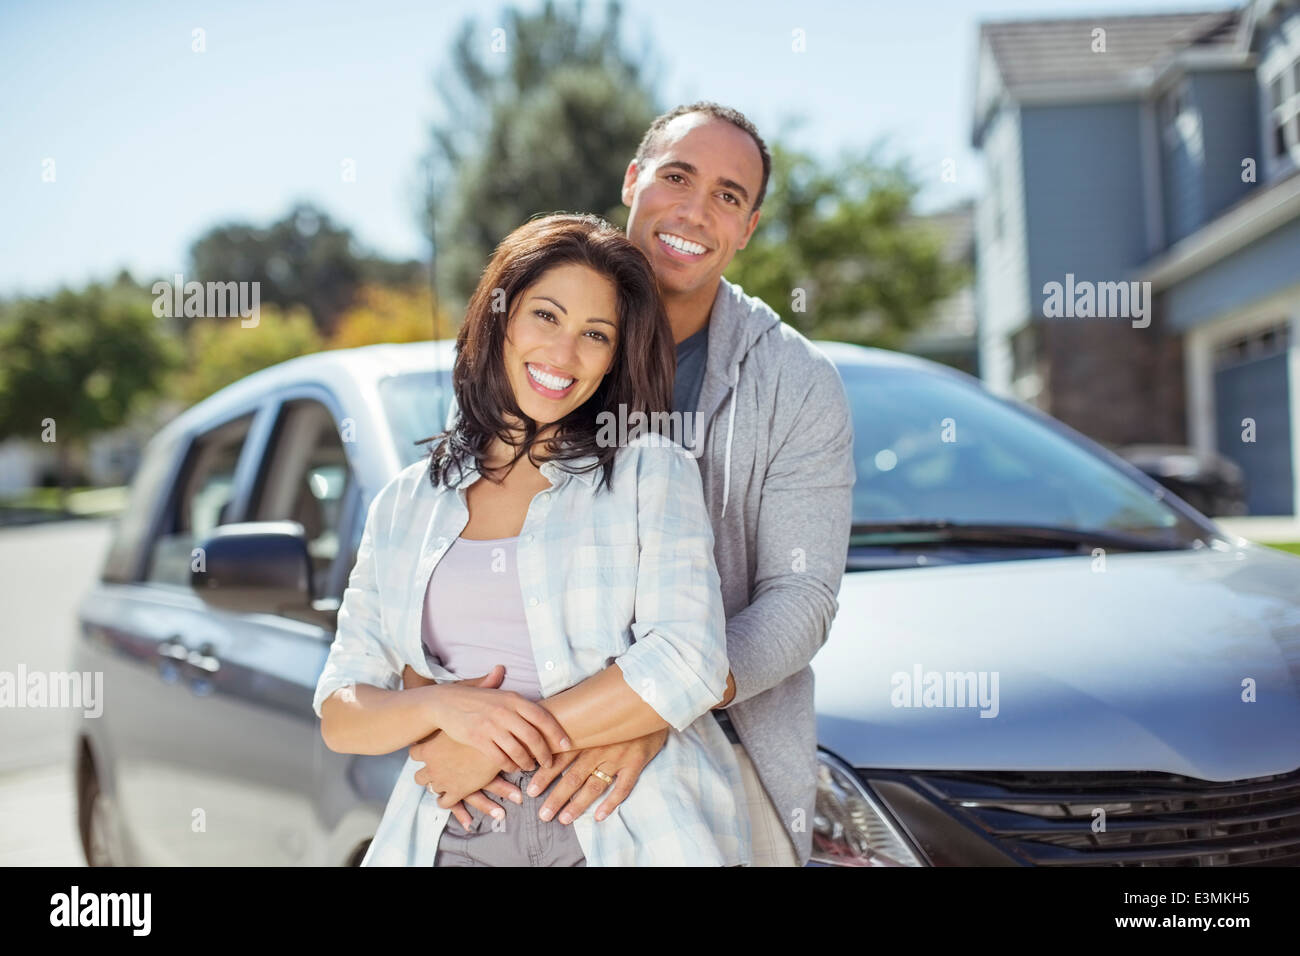 Portrait of smiling couple in driveway - Stock Image